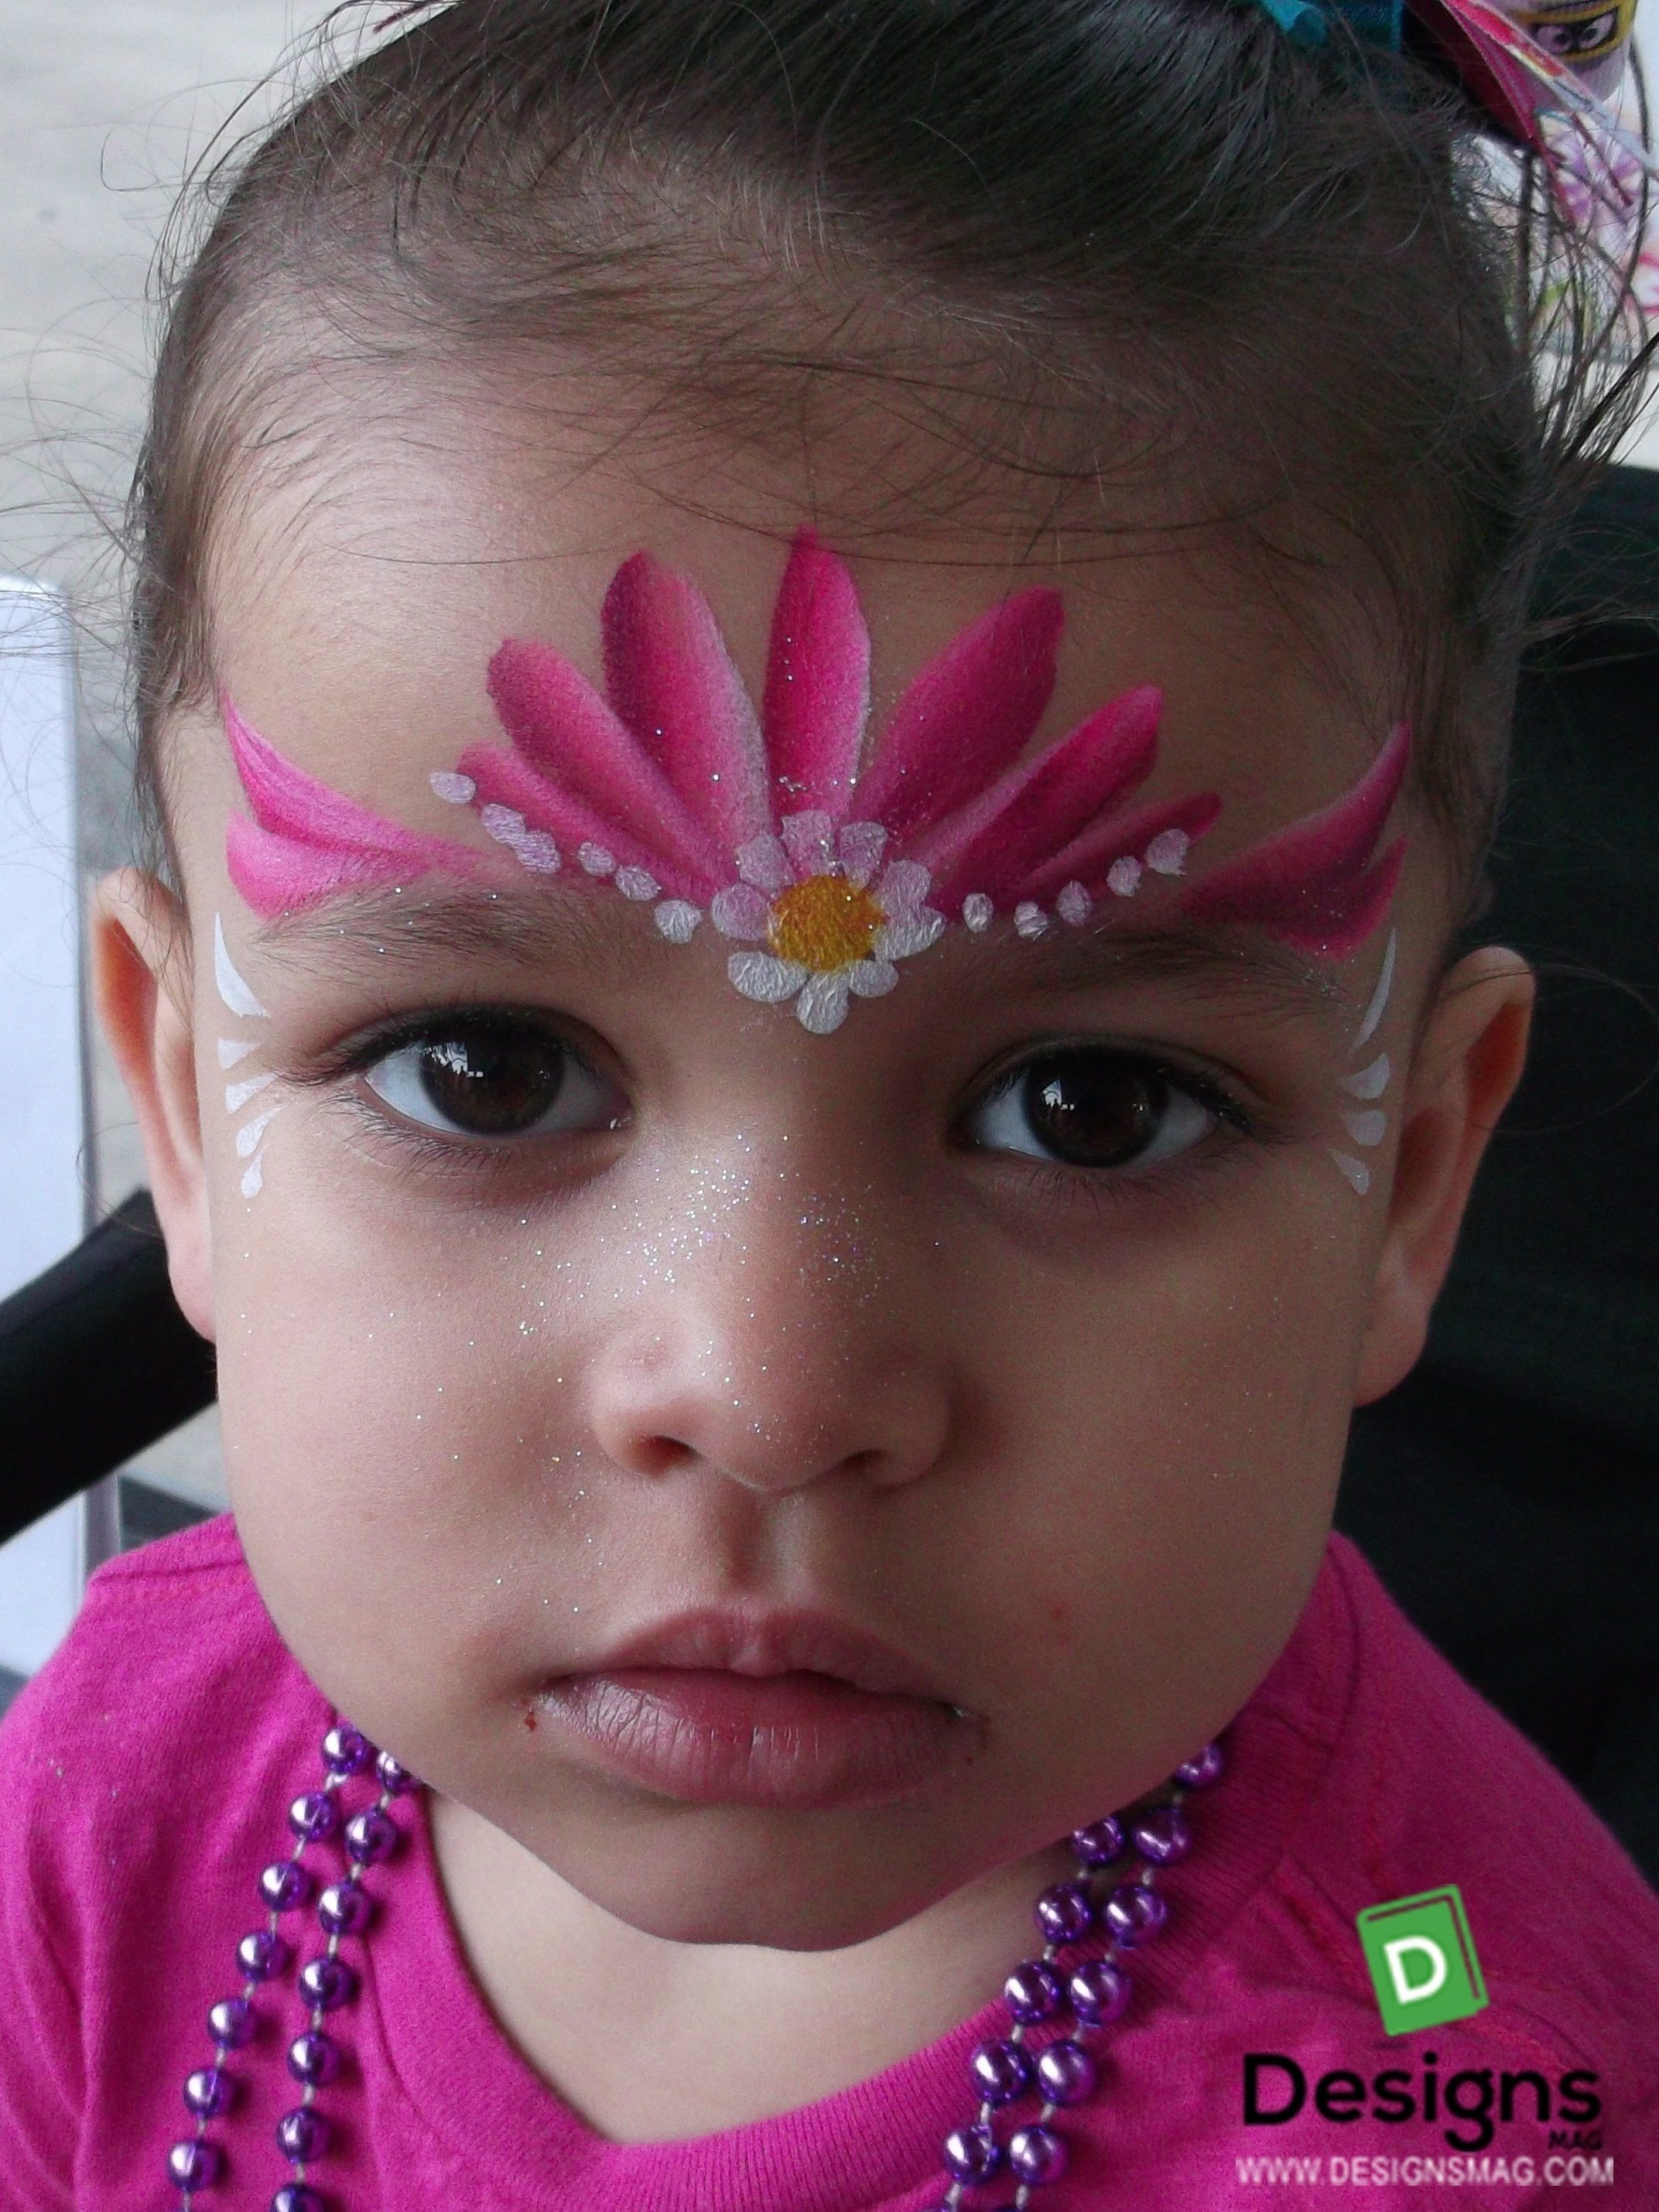 10 Attractive Face Painting Ideas For Kids 75 easy face painting ideas face painting makeup page 4 2020